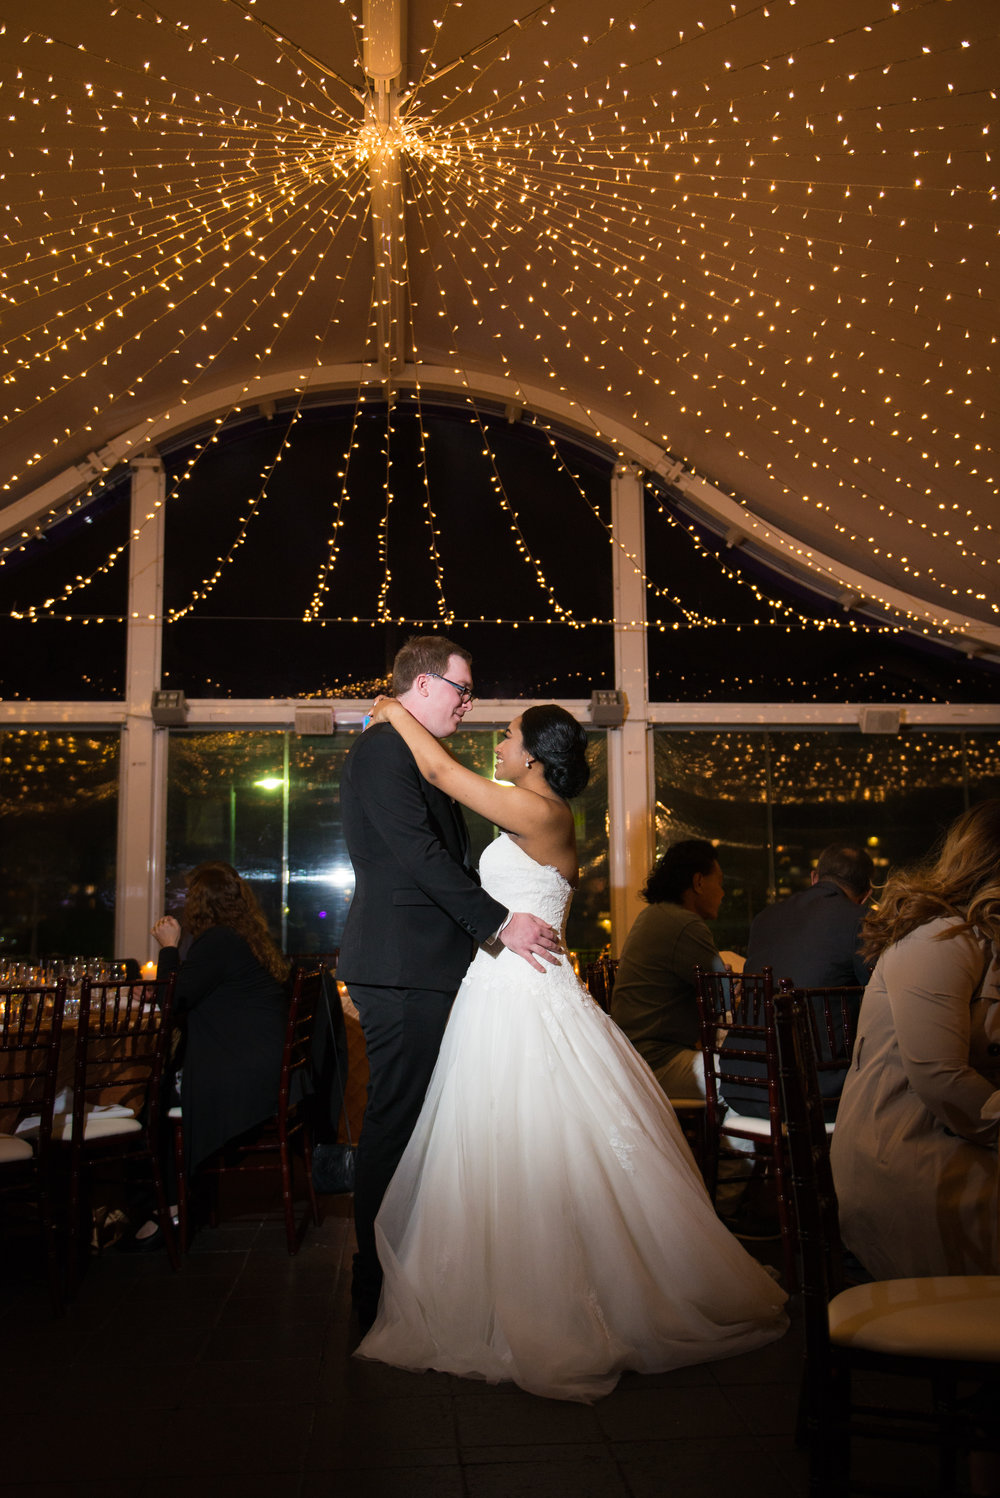 Rohan James Photography - Sophia & Dan Wedding Reception-72.jpg